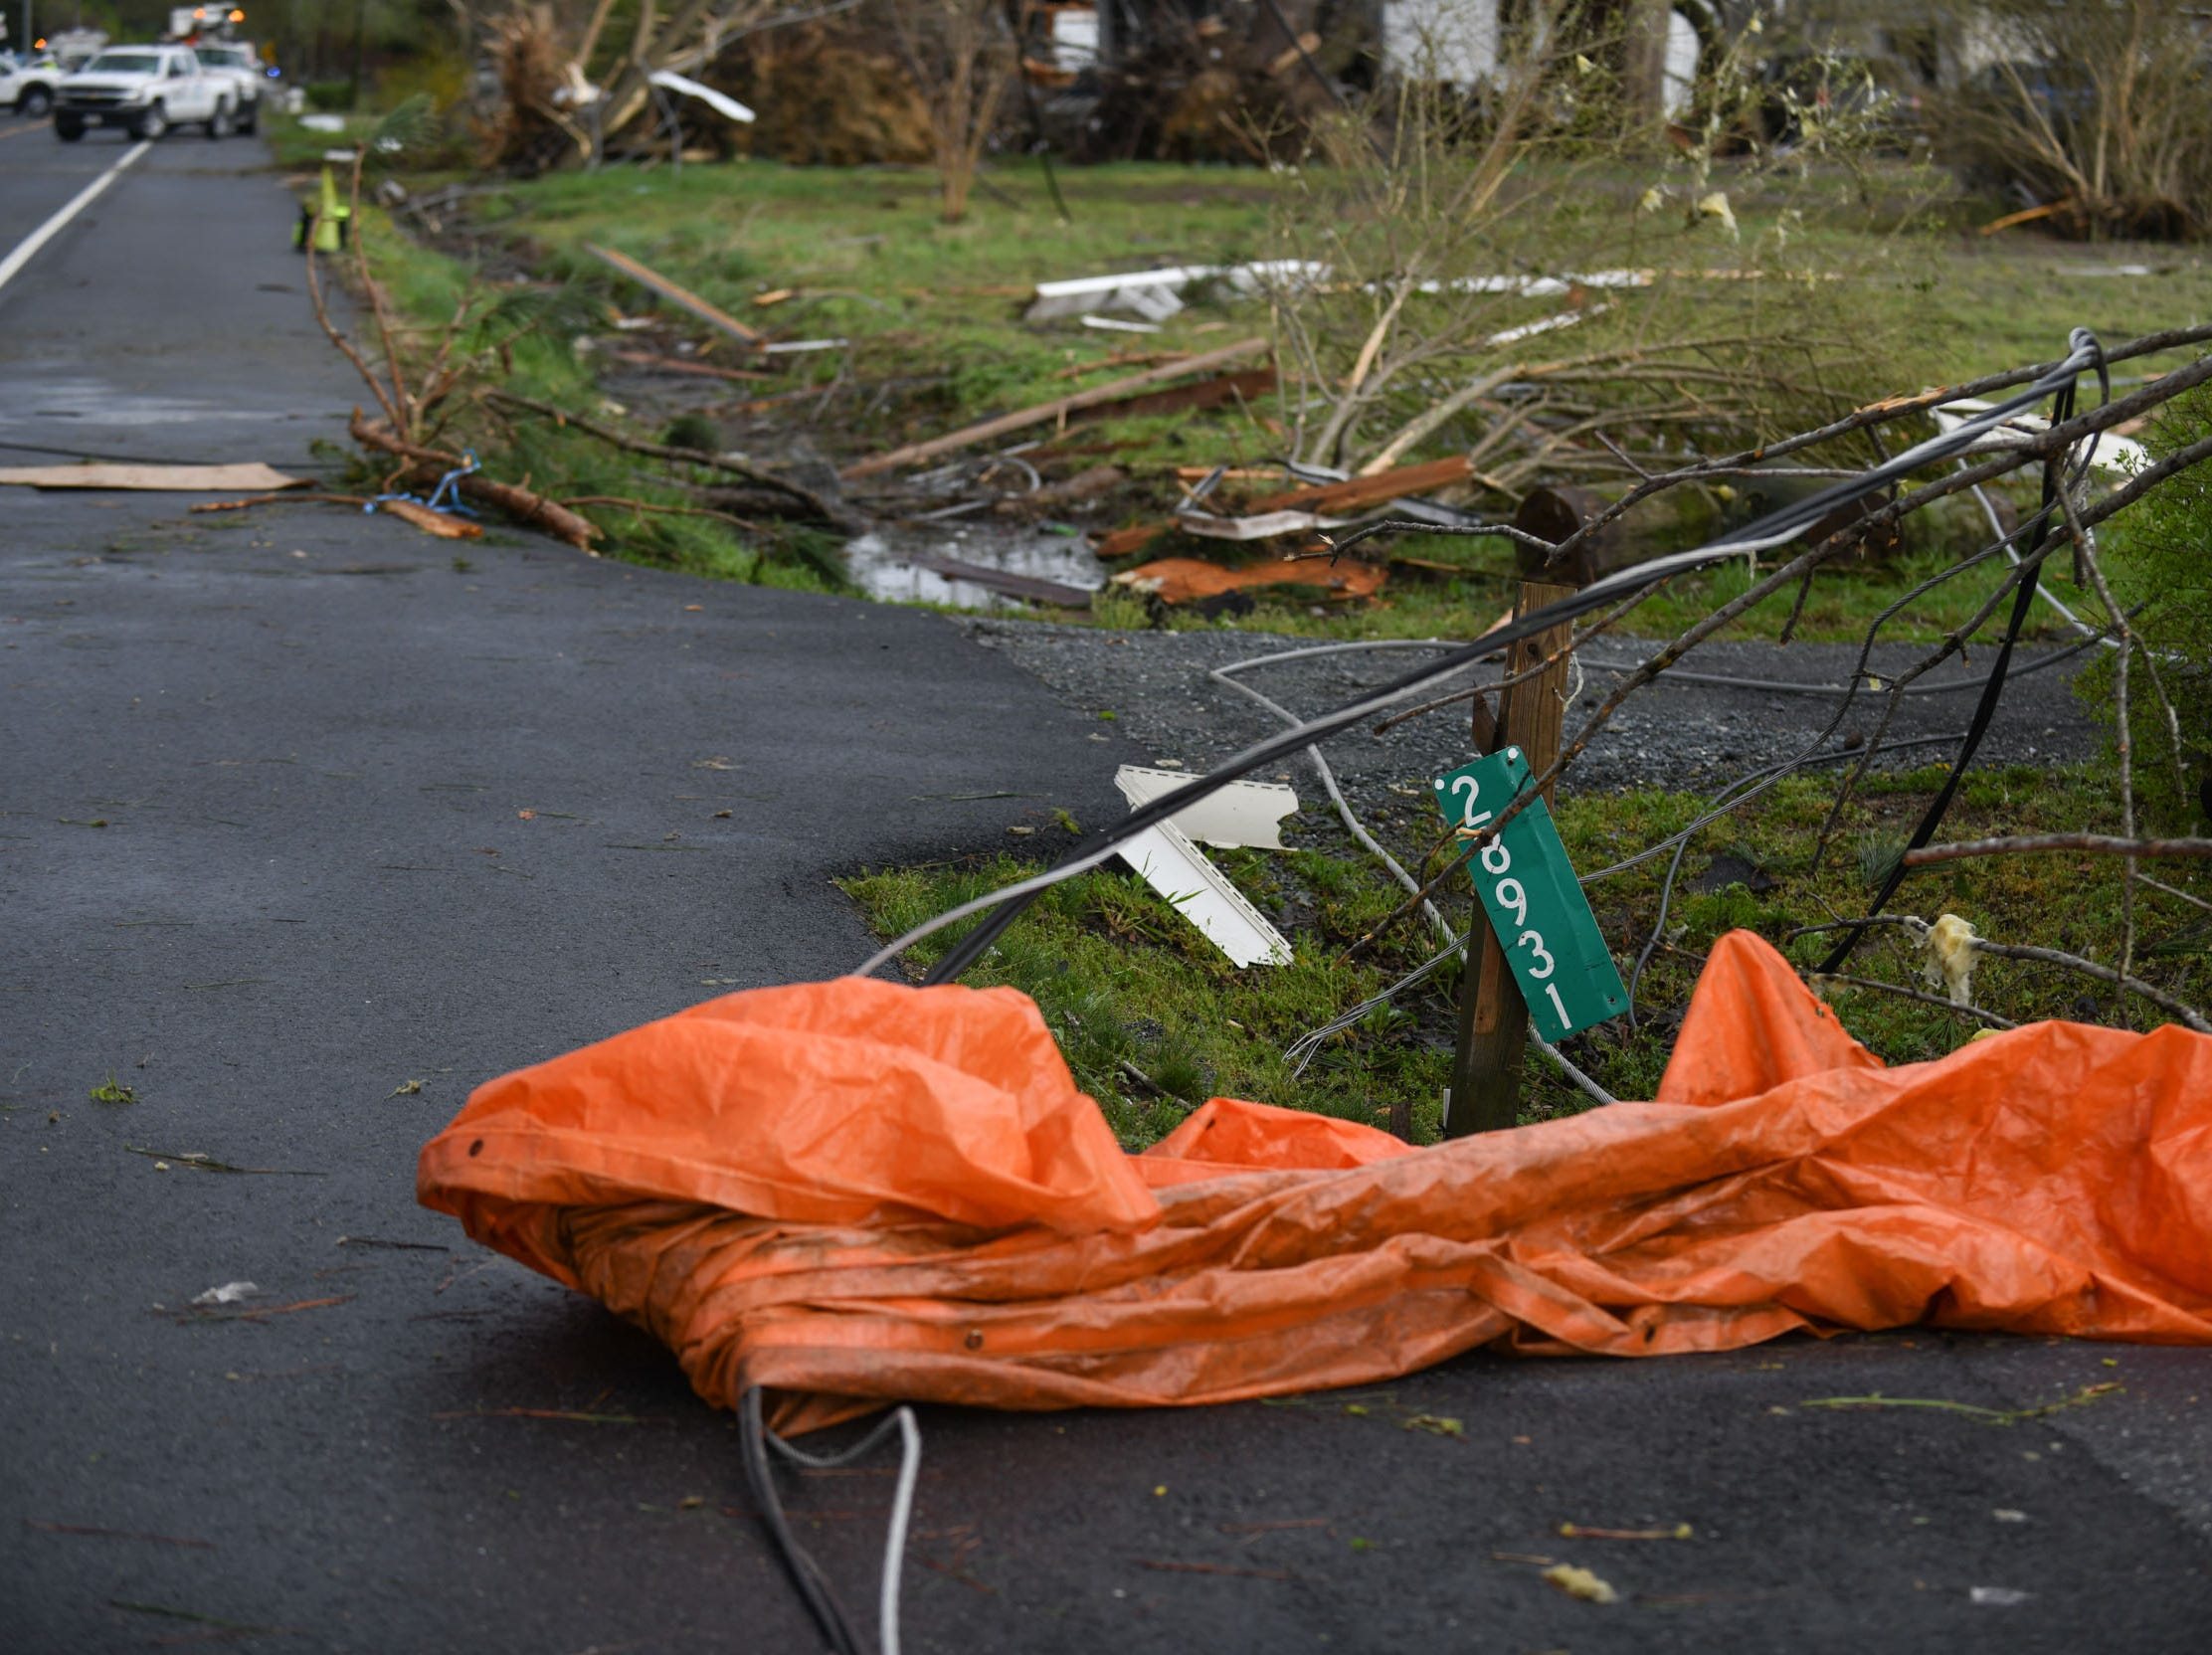 Debris litters Seaford Rd. in Laurel, Del. after a strong band of storms passed through Sussex County on Monday, 15, 2019.